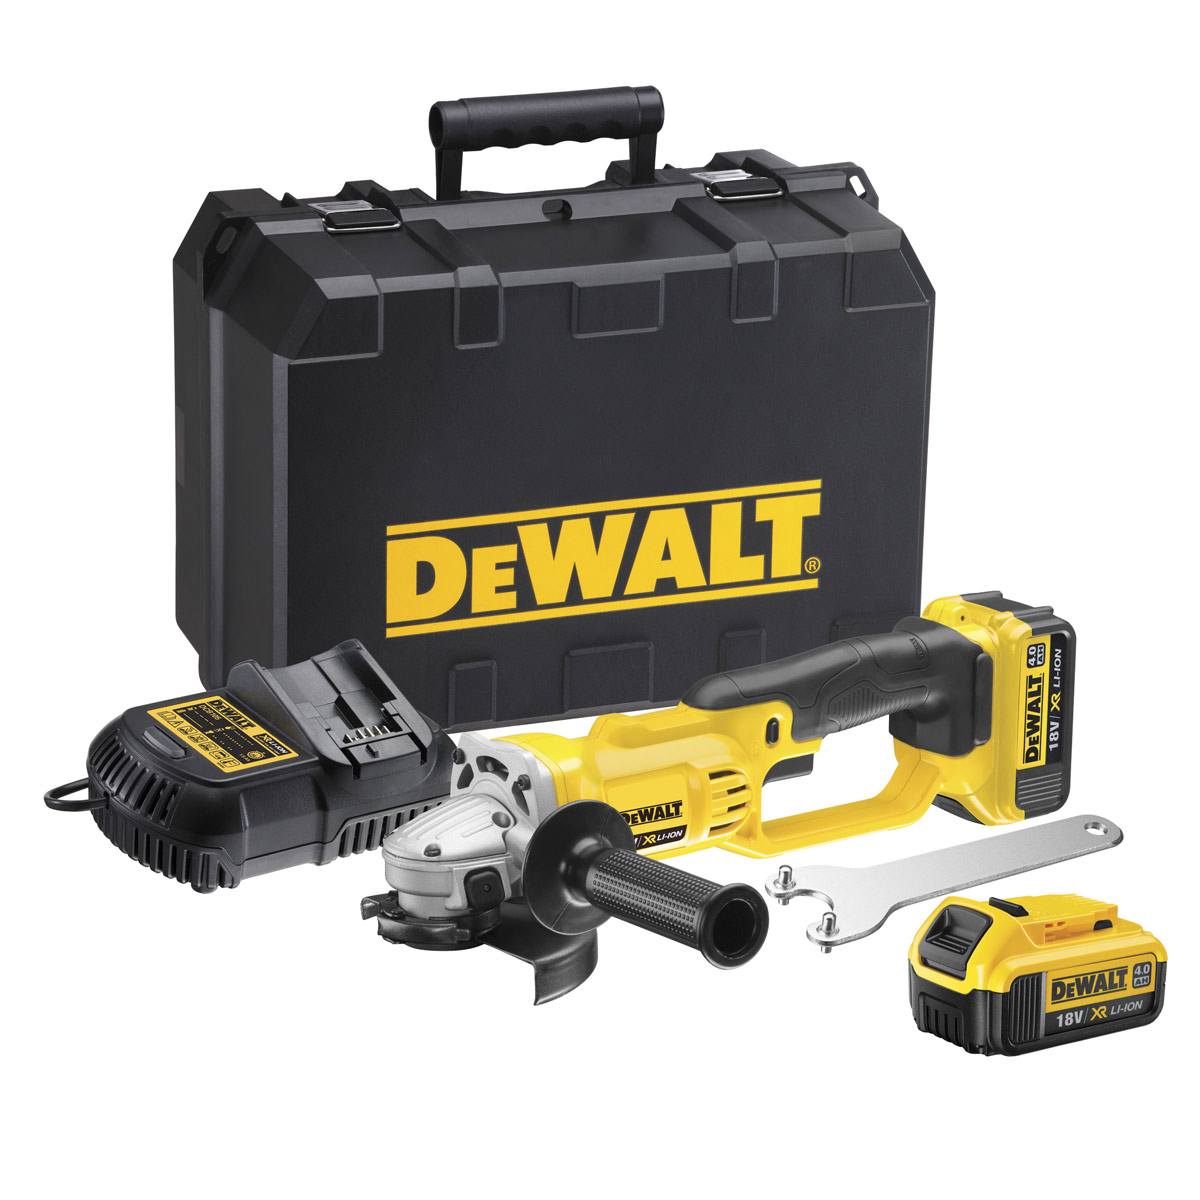 dewalt dcg412m2 gb 18v xr li ion angle grinder 2 x 4ah. Black Bedroom Furniture Sets. Home Design Ideas